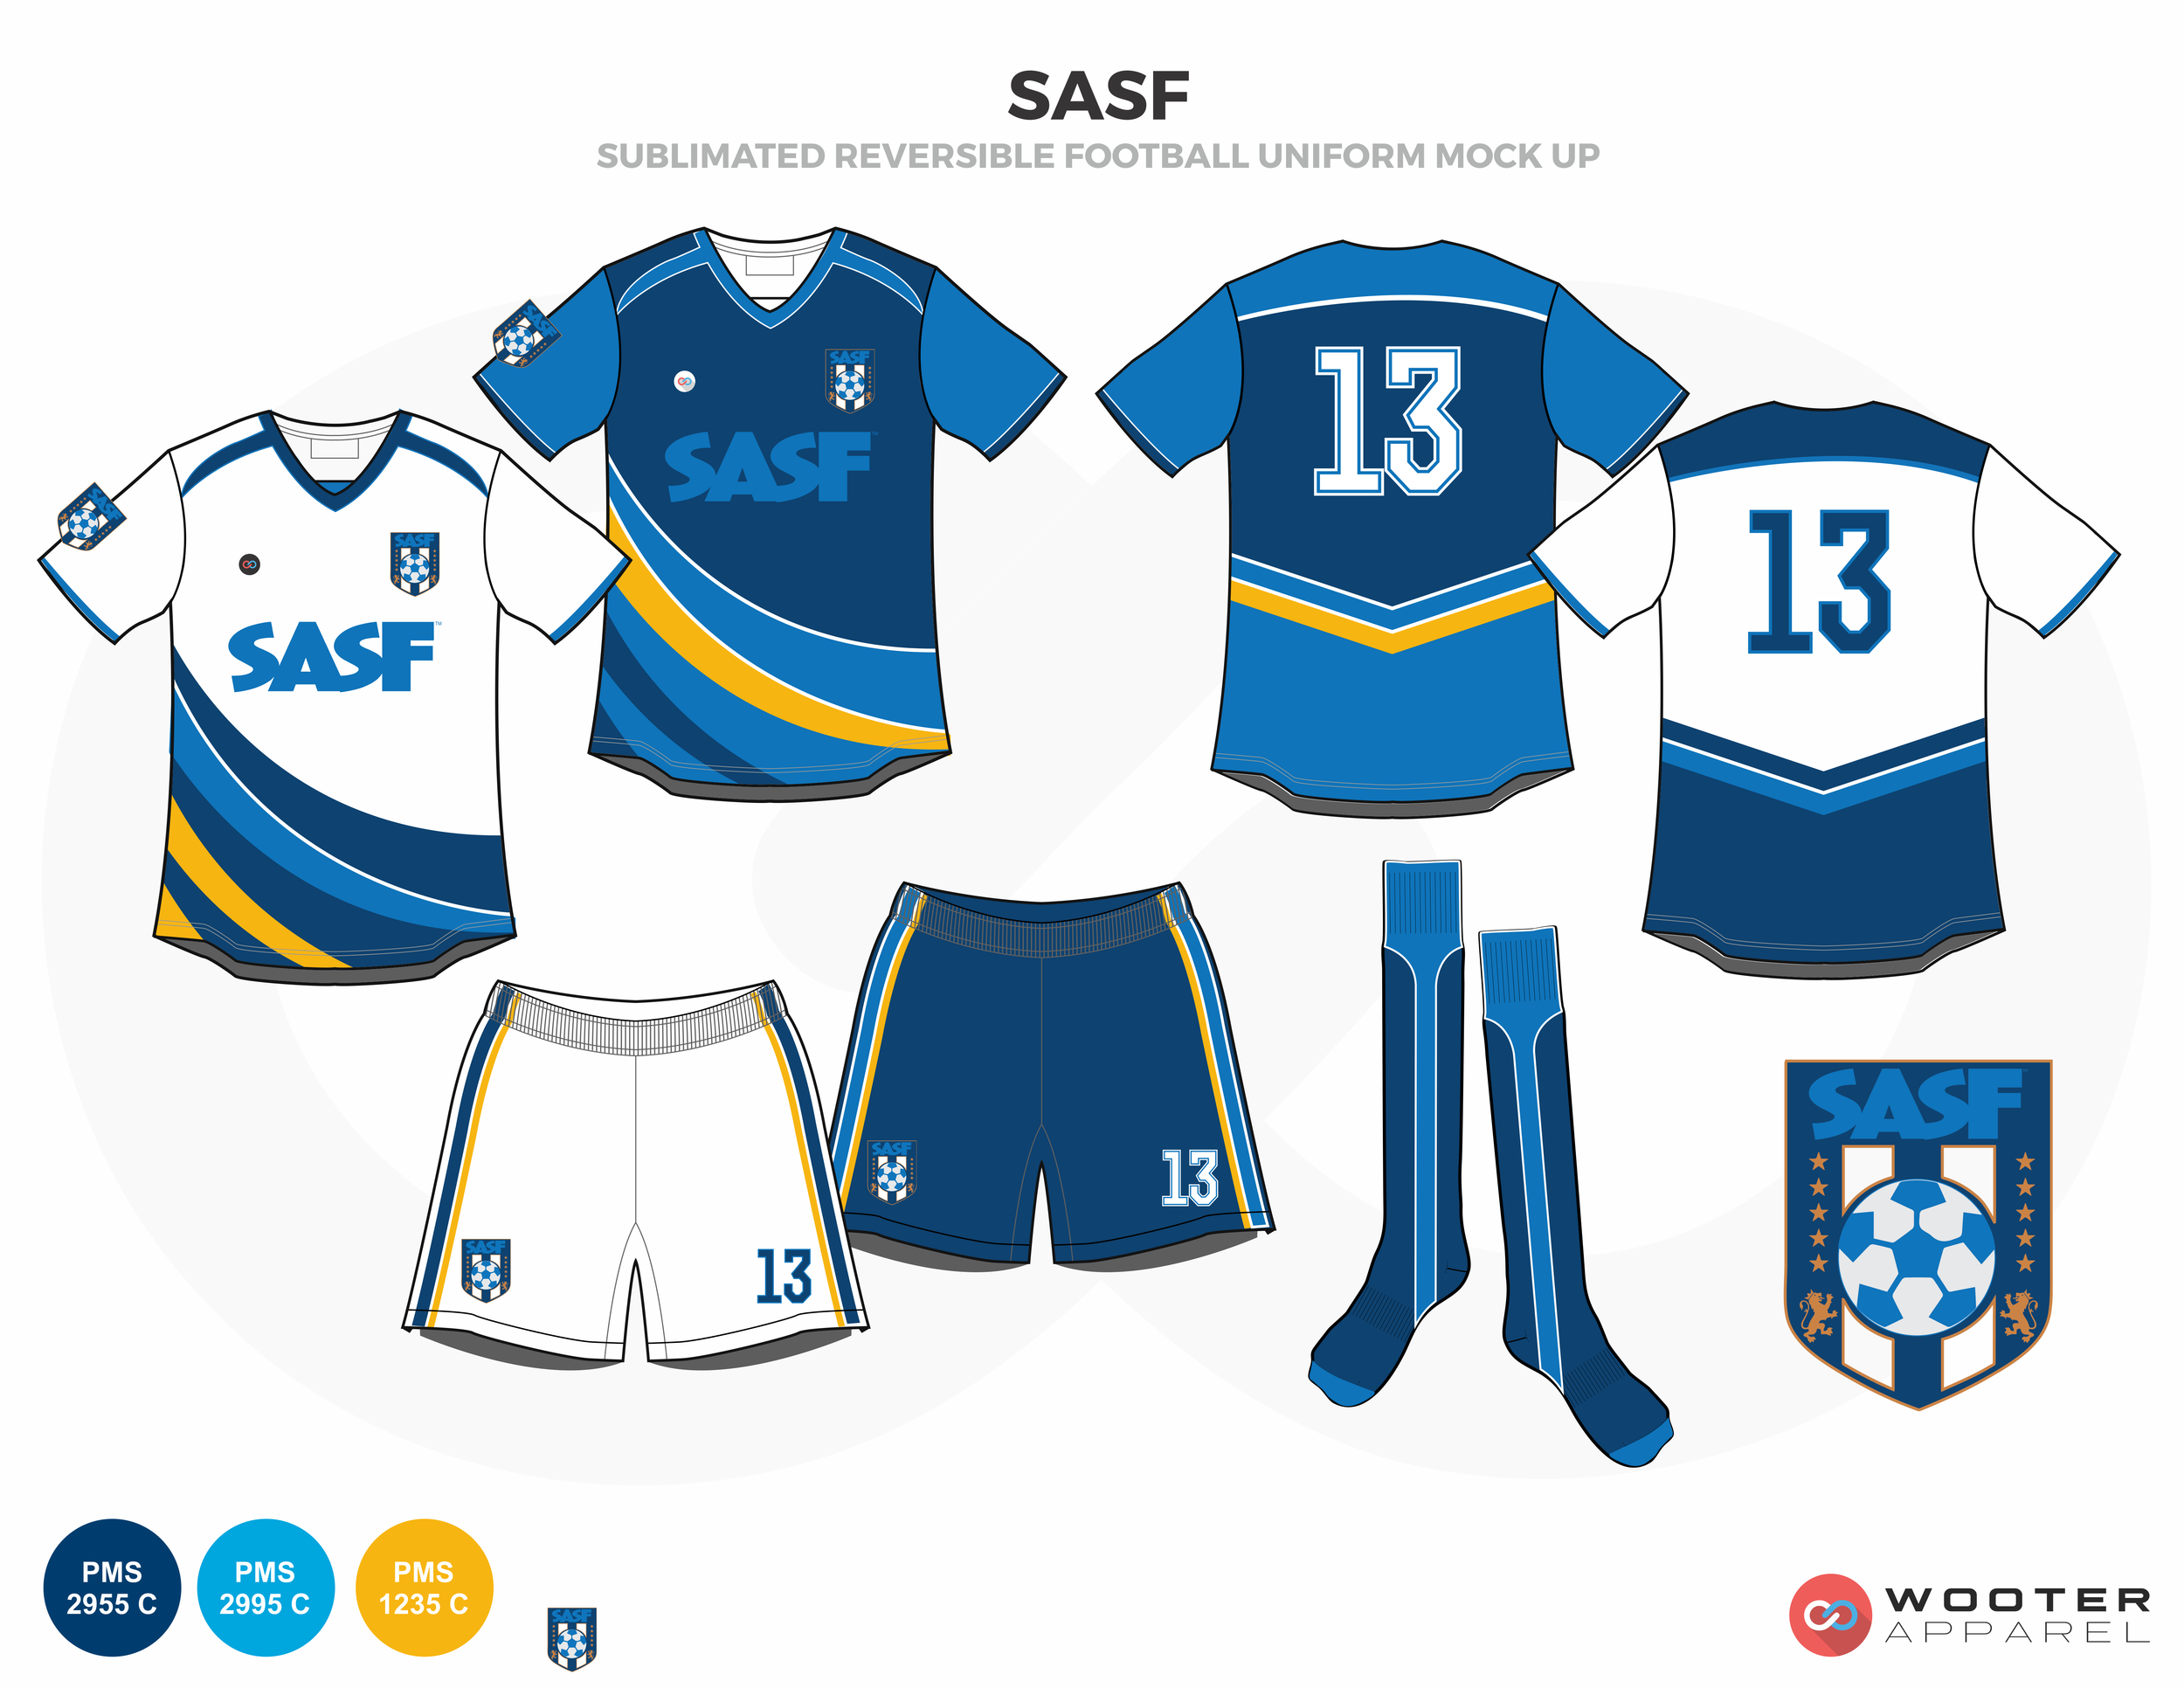 SASF Blue Yellow and White Soccer Uniform, Jersey, Shorts, and Socks